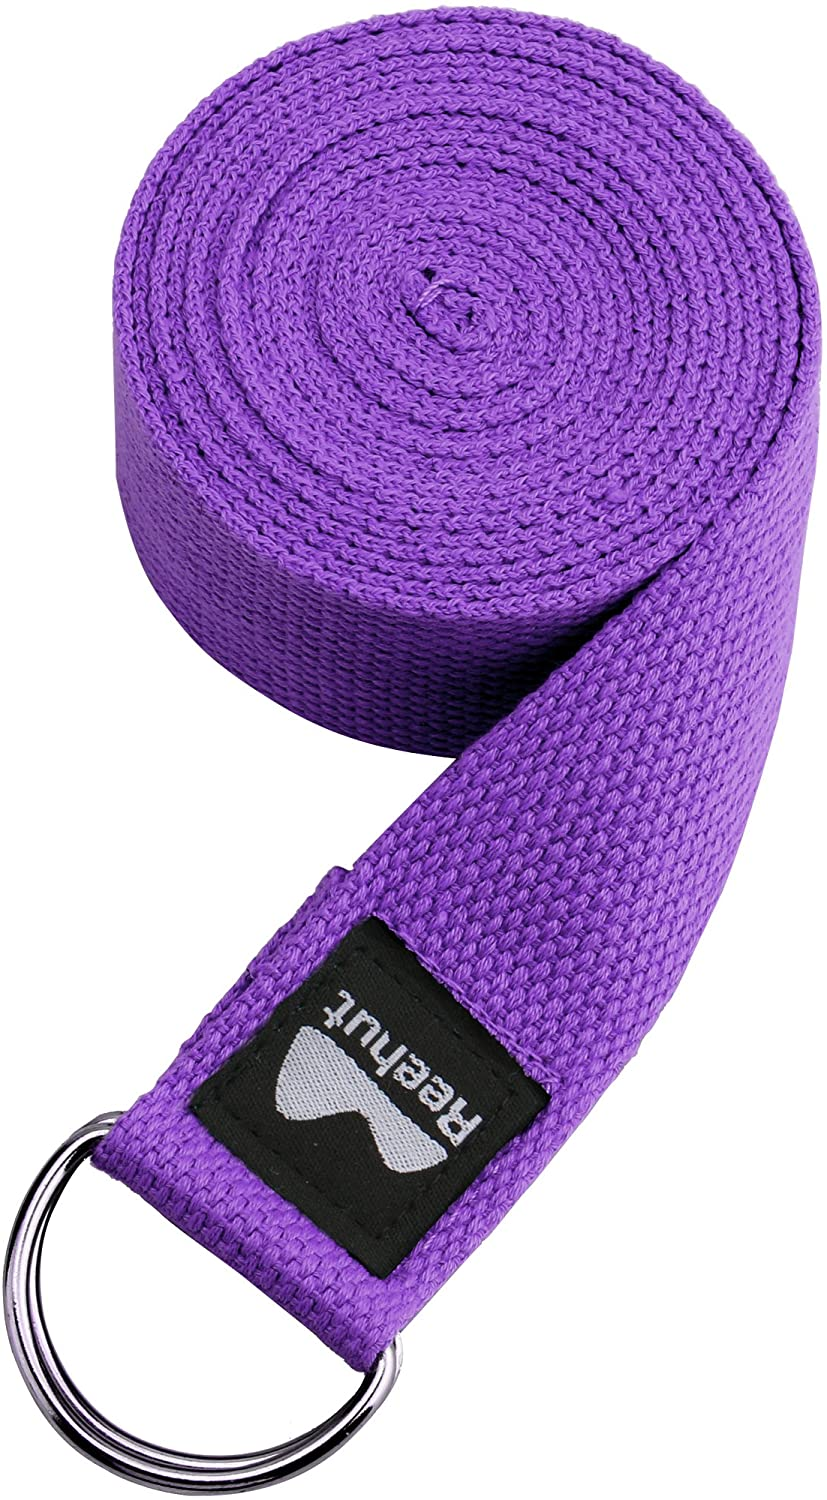 Yoga Strap w/Adjustable D-Ring Buckle - Durable Polyester Cotton Exercise Straps for Stretching, General Fitness, Flexibility and Physical Therapy